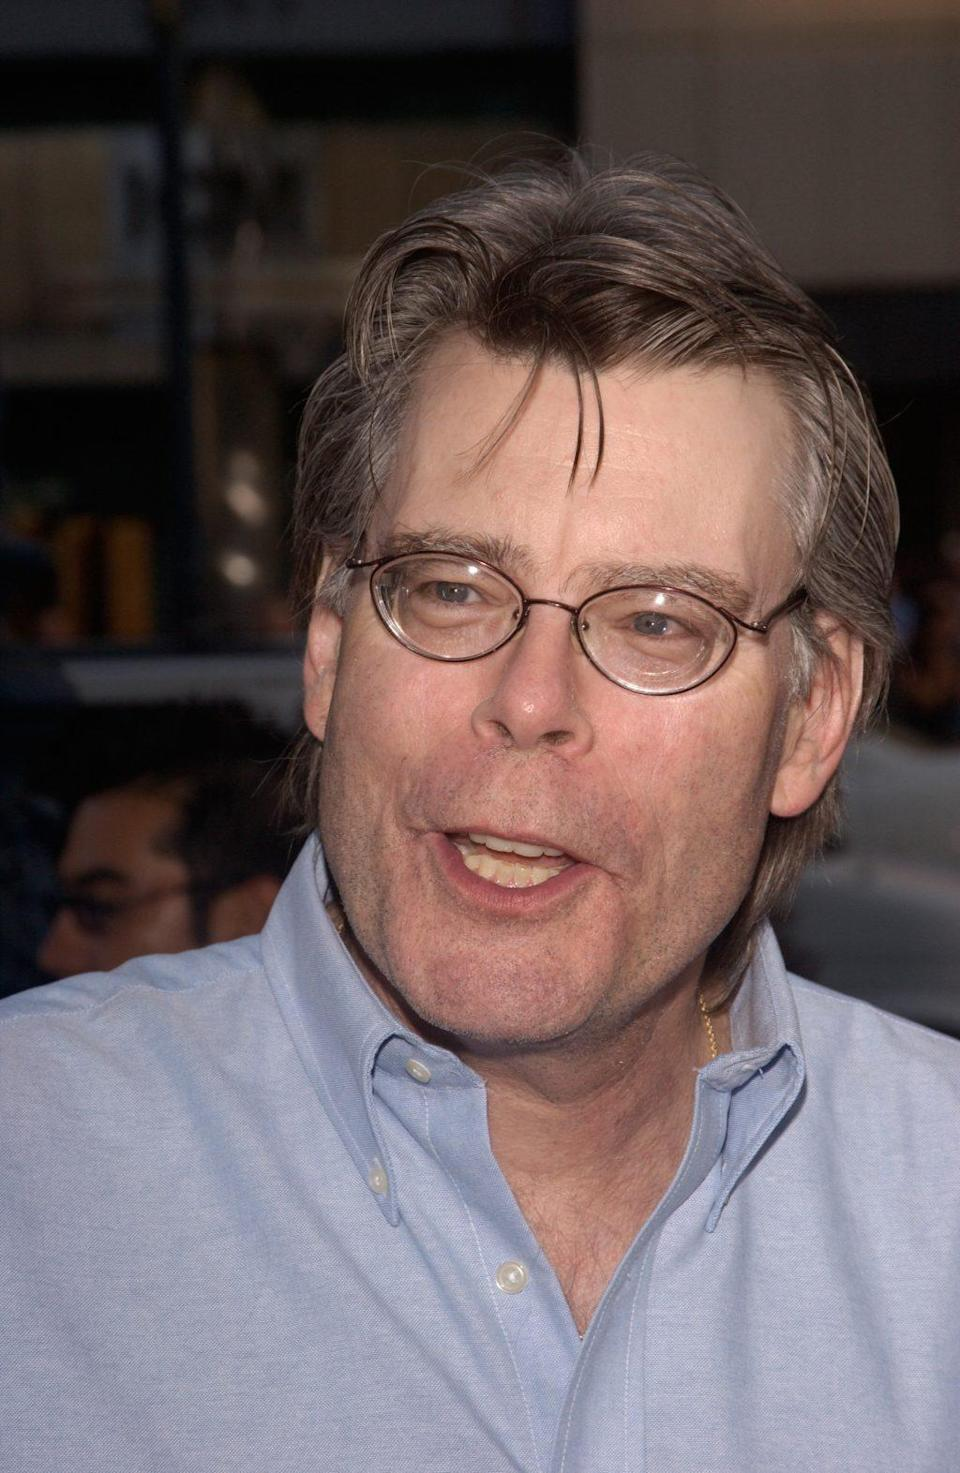 "Prolific novelist <strong>Stephen King </strong>was born and raised in <a href=""https://www.biography.com/writer/stephen-king"" rel=""nofollow noopener"" target=""_blank"" data-ylk=""slk:Portland, Maine"" class=""link rapid-noclick-resp"">Portland, Maine</a>. He attended the University of Maine, where he wrote for the school newspaper. His column was called ""<a href=""https://stephenking.com/xf/index.php?threads/steves-garbage-truck.9095/page-2"" rel=""nofollow noopener"" target=""_blank"" data-ylk=""slk:Steve King's Garbage Truck"" class=""link rapid-noclick-resp"">Steve King's Garbage Truck</a>."" Derry, the town in which many of his books are set, is modeled after <a href=""https://www.theguardian.com/travel/2017/sep/20/it-movie-film-exploring-stephen-king-maine-bangor-mount-hope-cemetery"" rel=""nofollow noopener"" target=""_blank"" data-ylk=""slk:Bangor, Maine"" class=""link rapid-noclick-resp"">Bangor, Maine</a>, where King still lives today."